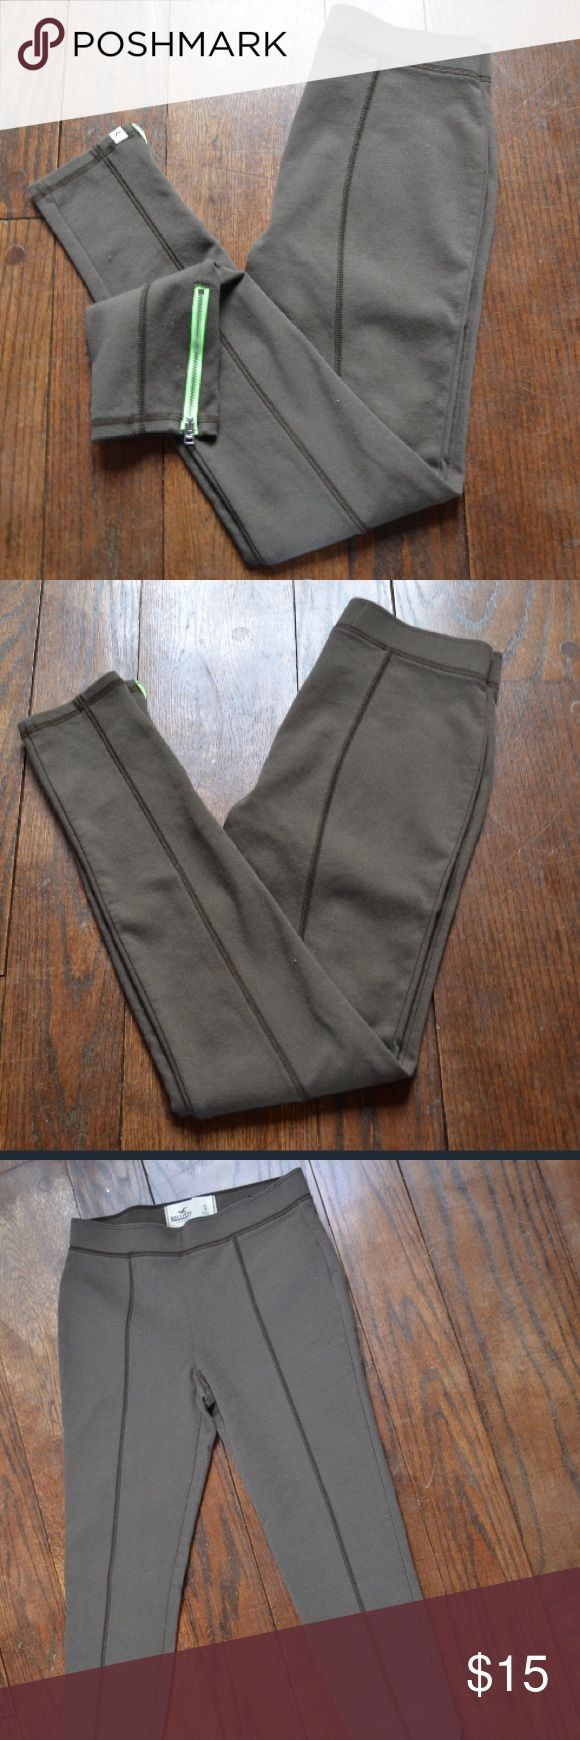 Hollister Leggings Hollister green workout leggings with neon green side zippers on the bottom of each leg. 65% cotton, 30% polyester, and 5% elastane. Be comfortable and look great at the same time!  Size: Small Brand: Hollister Hollister Pants Leggings